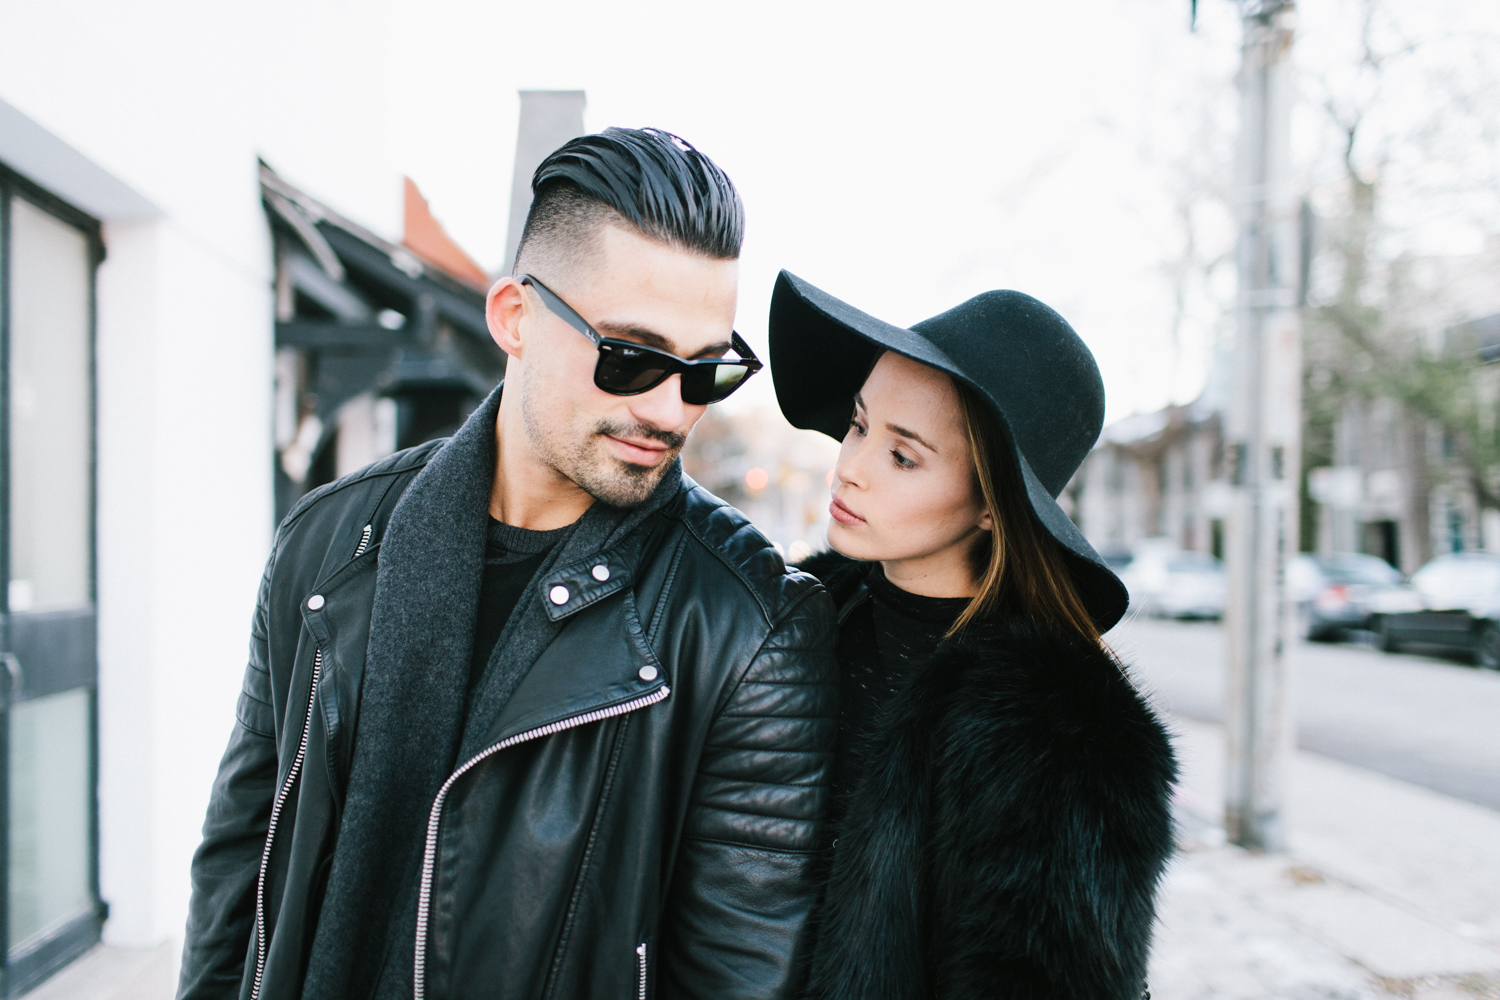 Jodi-Blk-fashion-blogger-Jose-Lopez-fit-michael-rousseau-photography-streetwear-fashion-engagement-session033.jpg